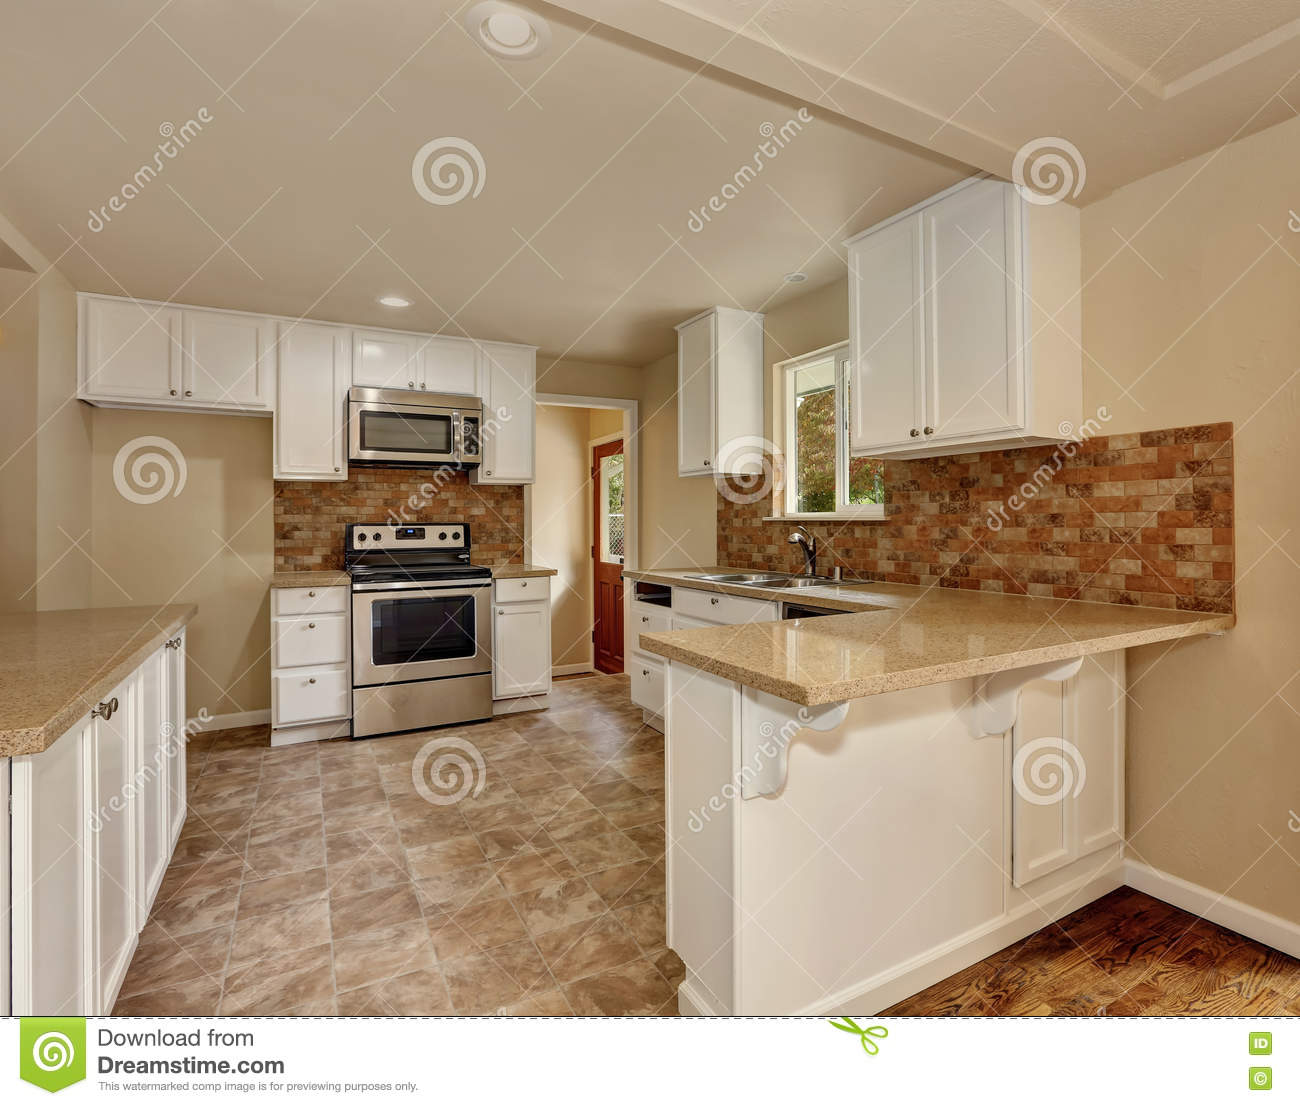 american classics kitchen cabinets cabinet warehouse classic style room interior stock photo